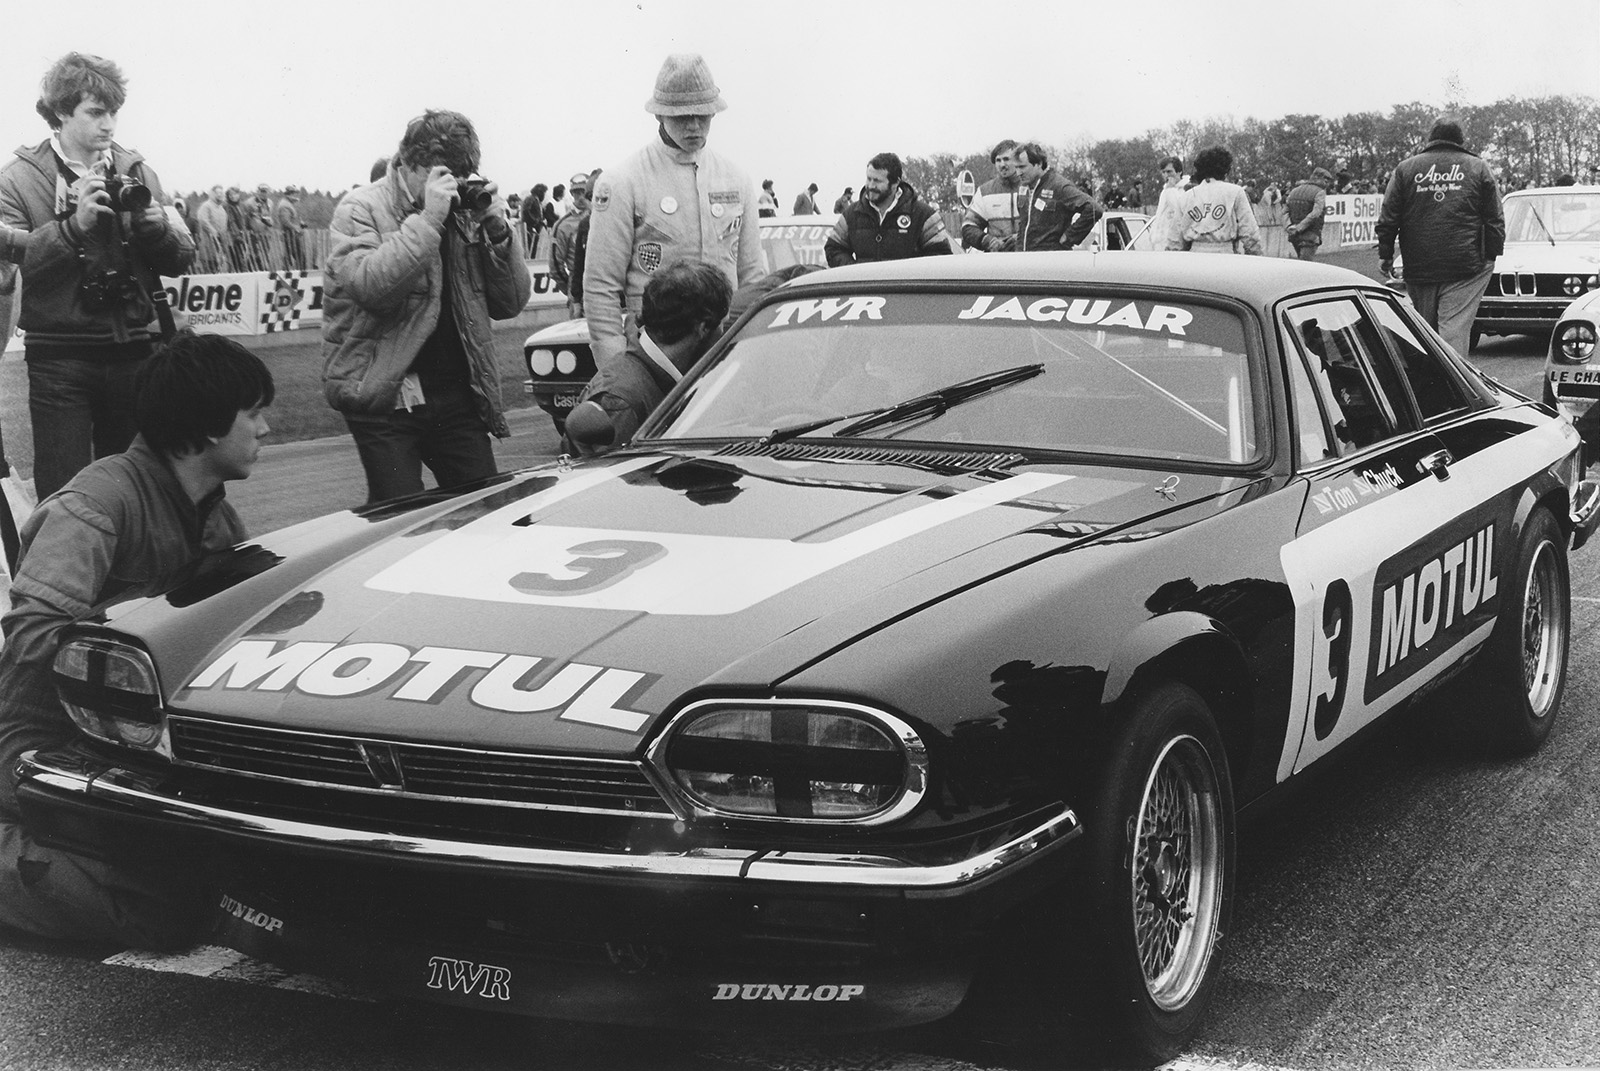 jaguar_twr_xjs_walkinshaw_wilkinson_sayer_selection_donnington_tt_2.jpg